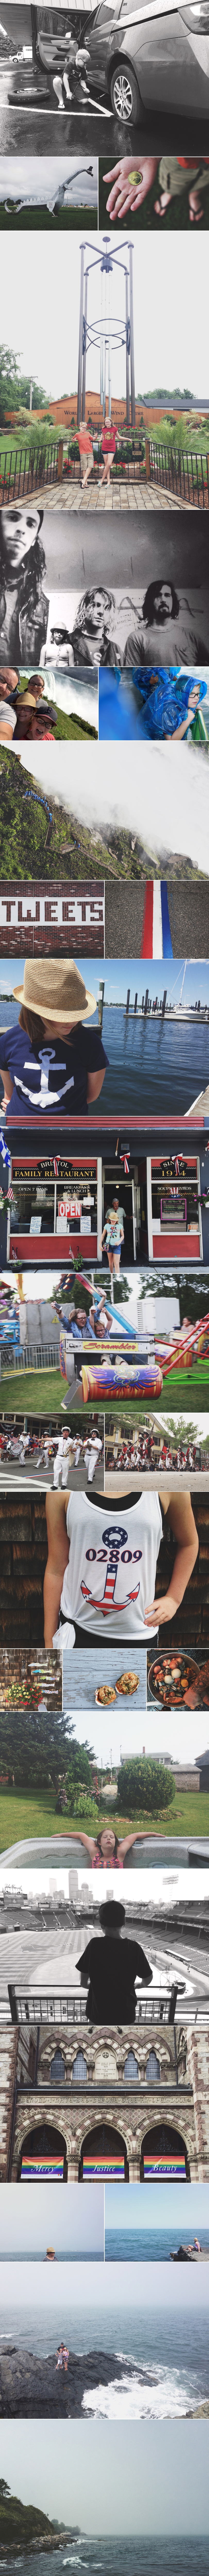 road_trip_rhode_island_boston_cleveland_red_sox_fenway_park_july_4th_bristol_niagara_falls_newport_rock_and_roll_hall_of_fame_40_steps_parade